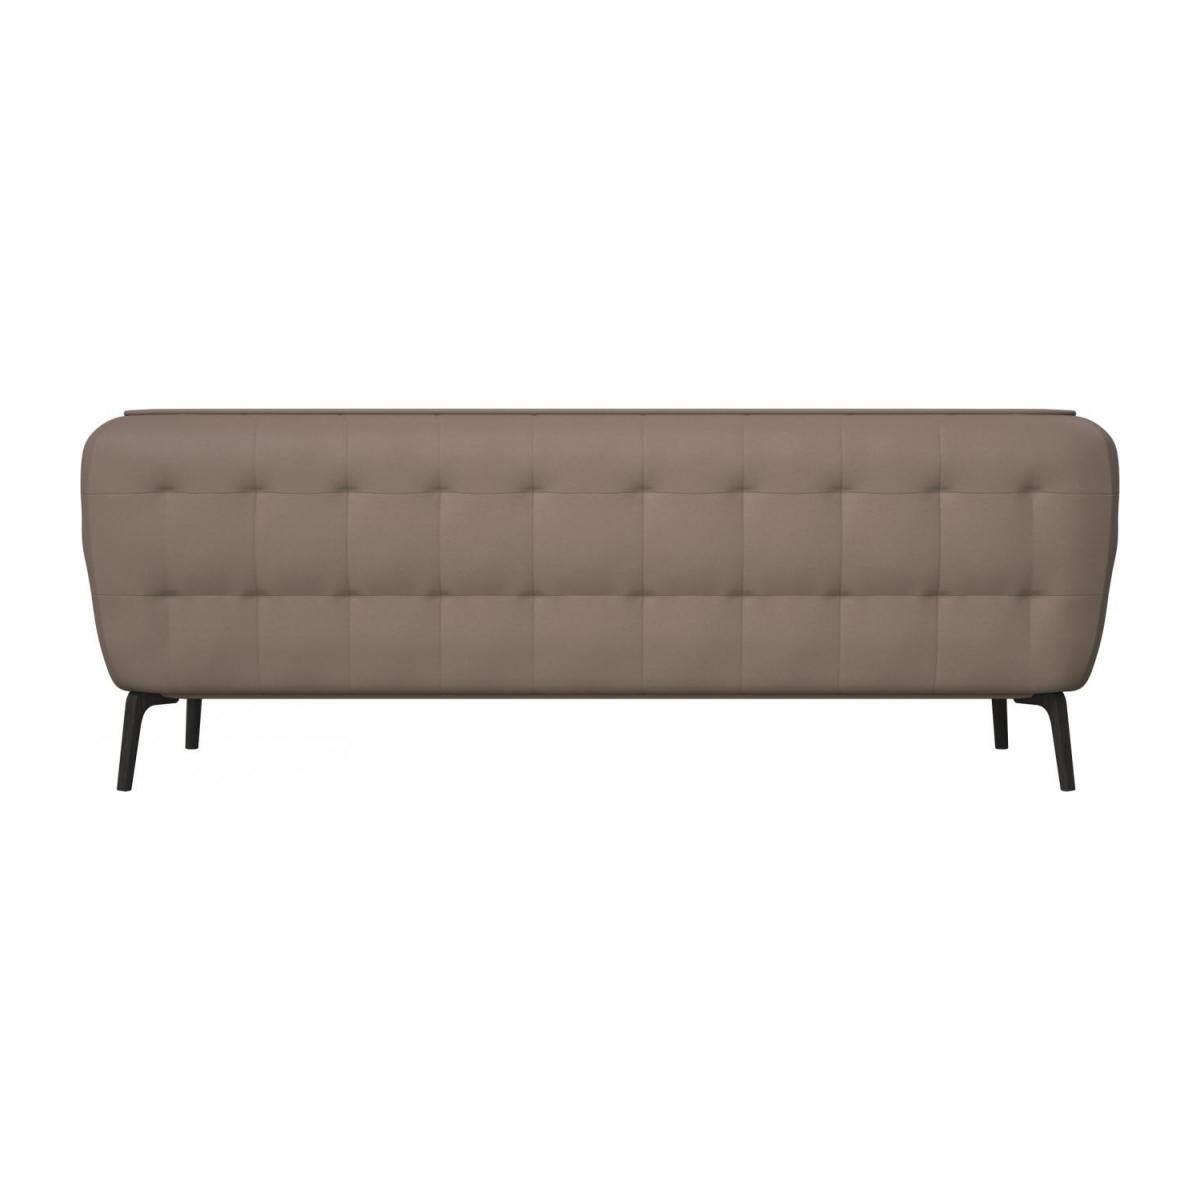 3 seater sofa in Eton veined leather, stone and dark feet n°3